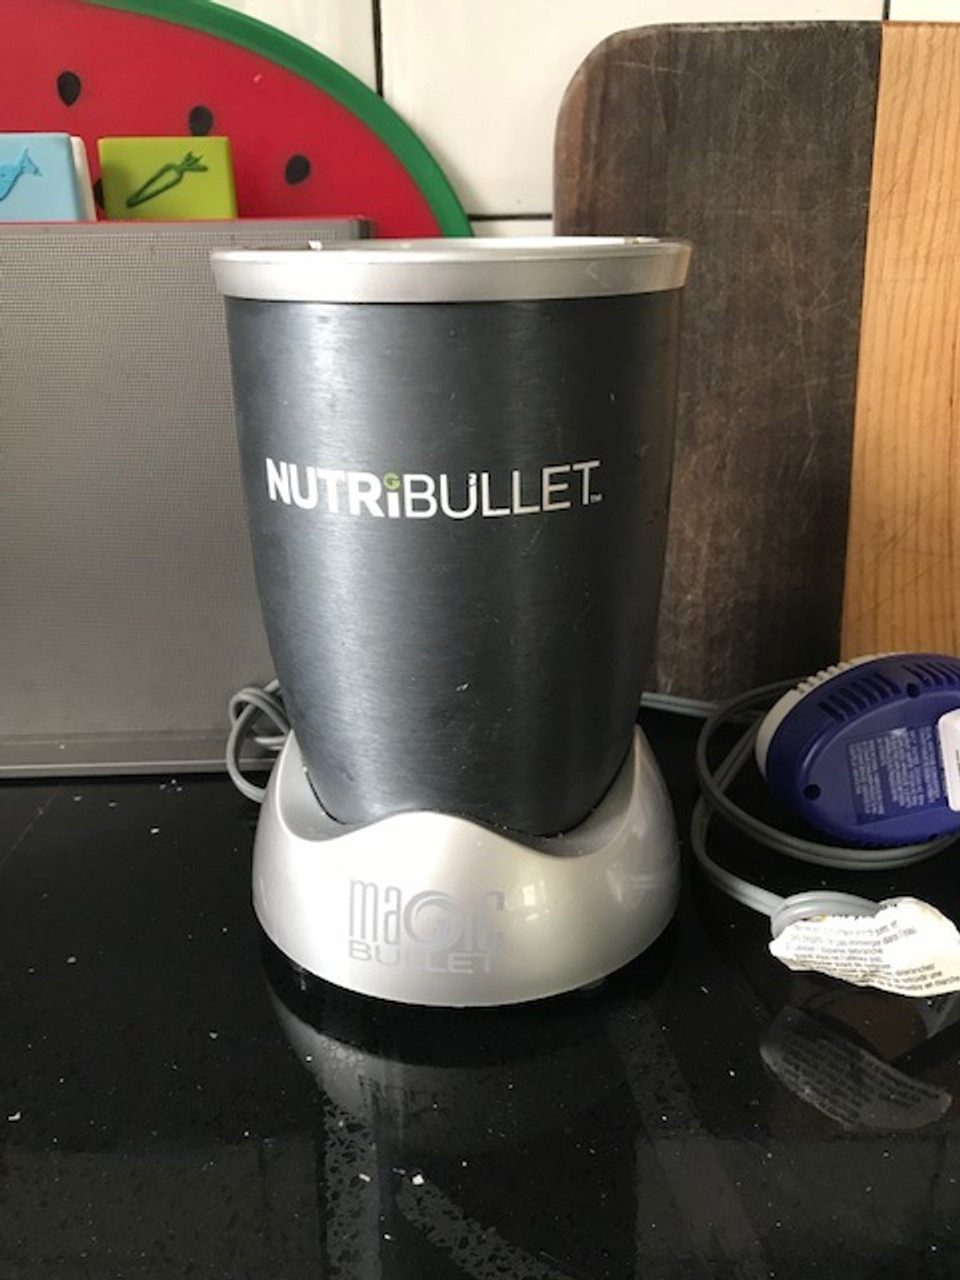 Mourning the loss of my NutriBullet